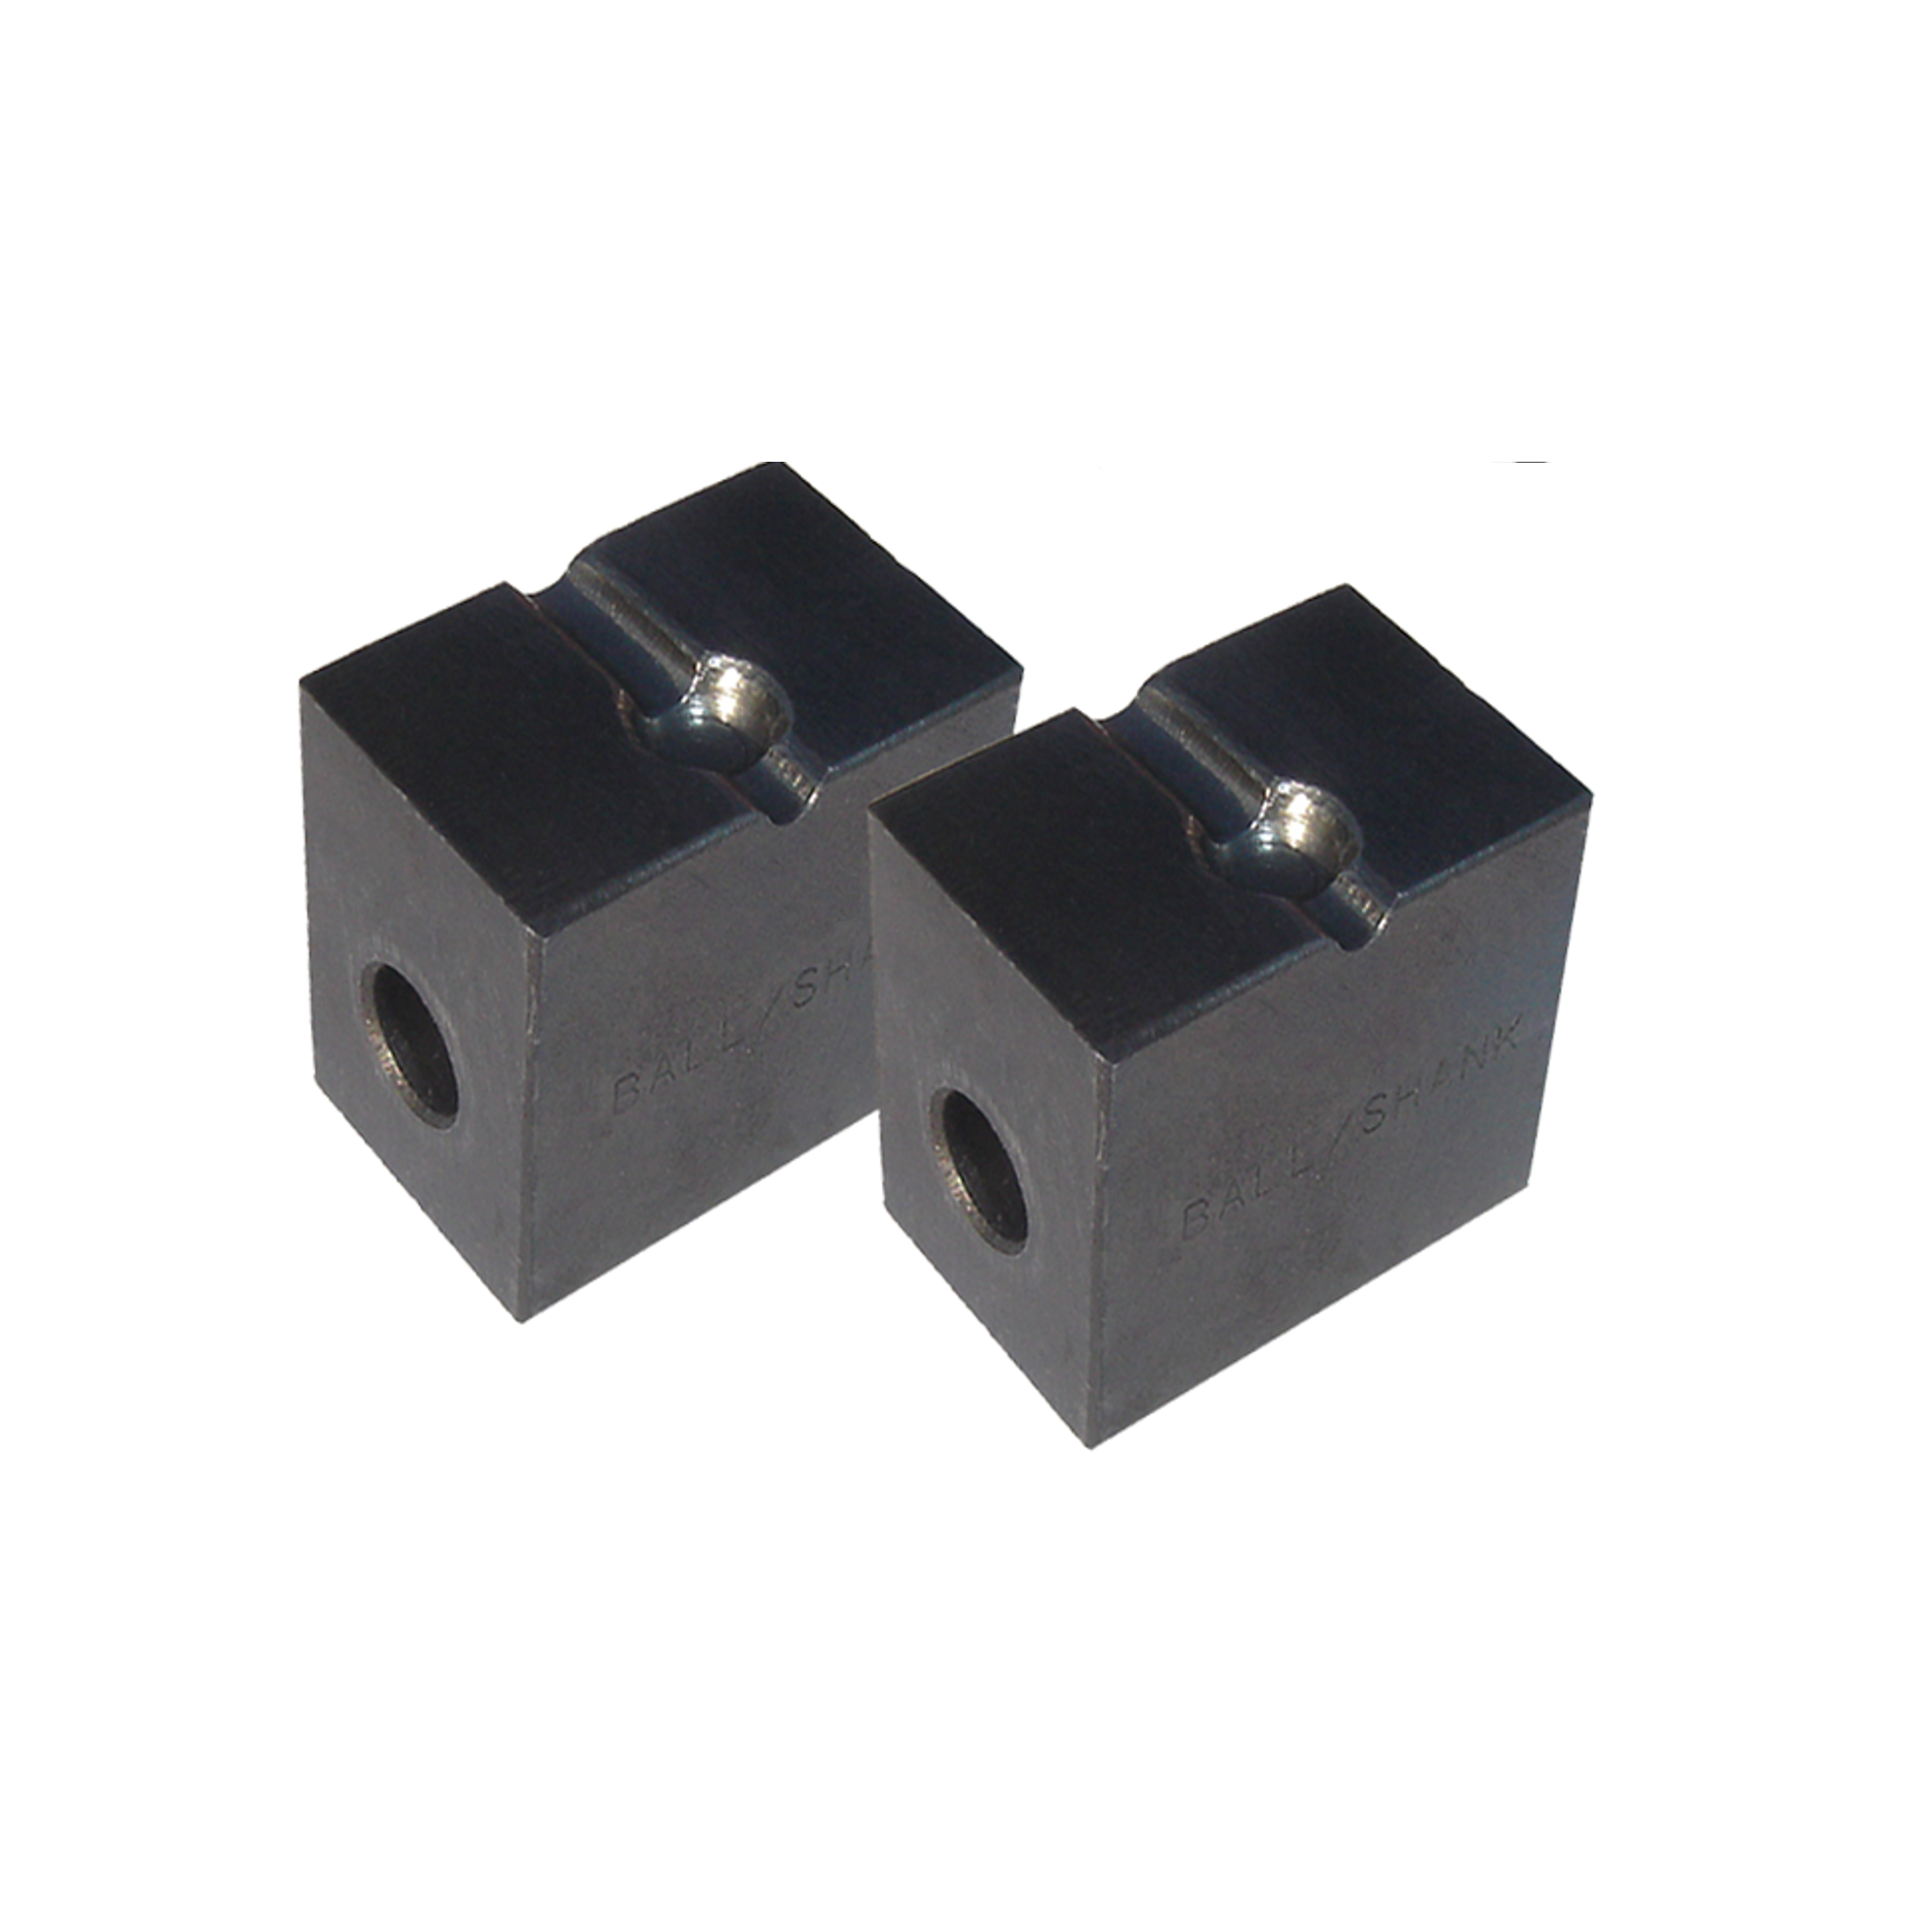 Hardened Steel Die set for Ball Terminals